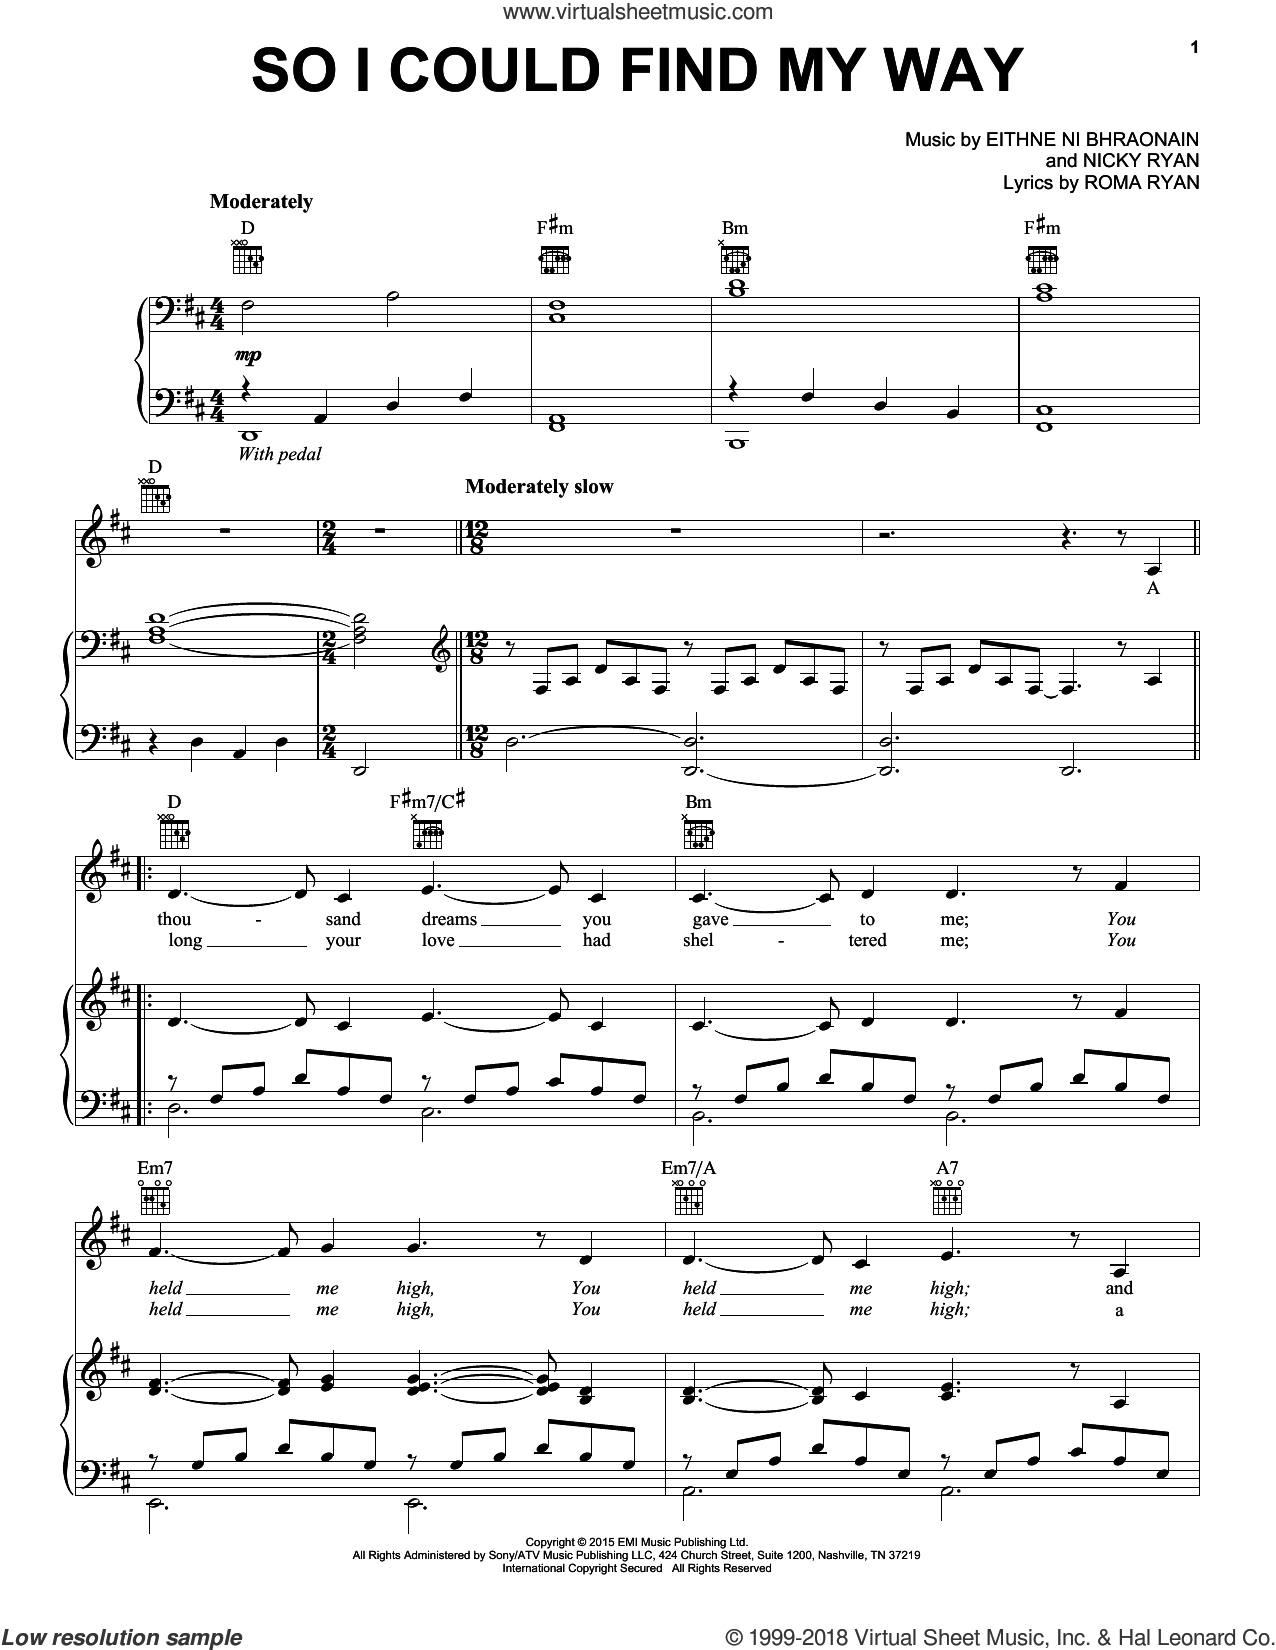 So I Could Find My Way sheet music for voice, piano or guitar by Enya, Eithne Ni Bhraonain, Nicky Ryan and Roma Ryan, intermediate skill level